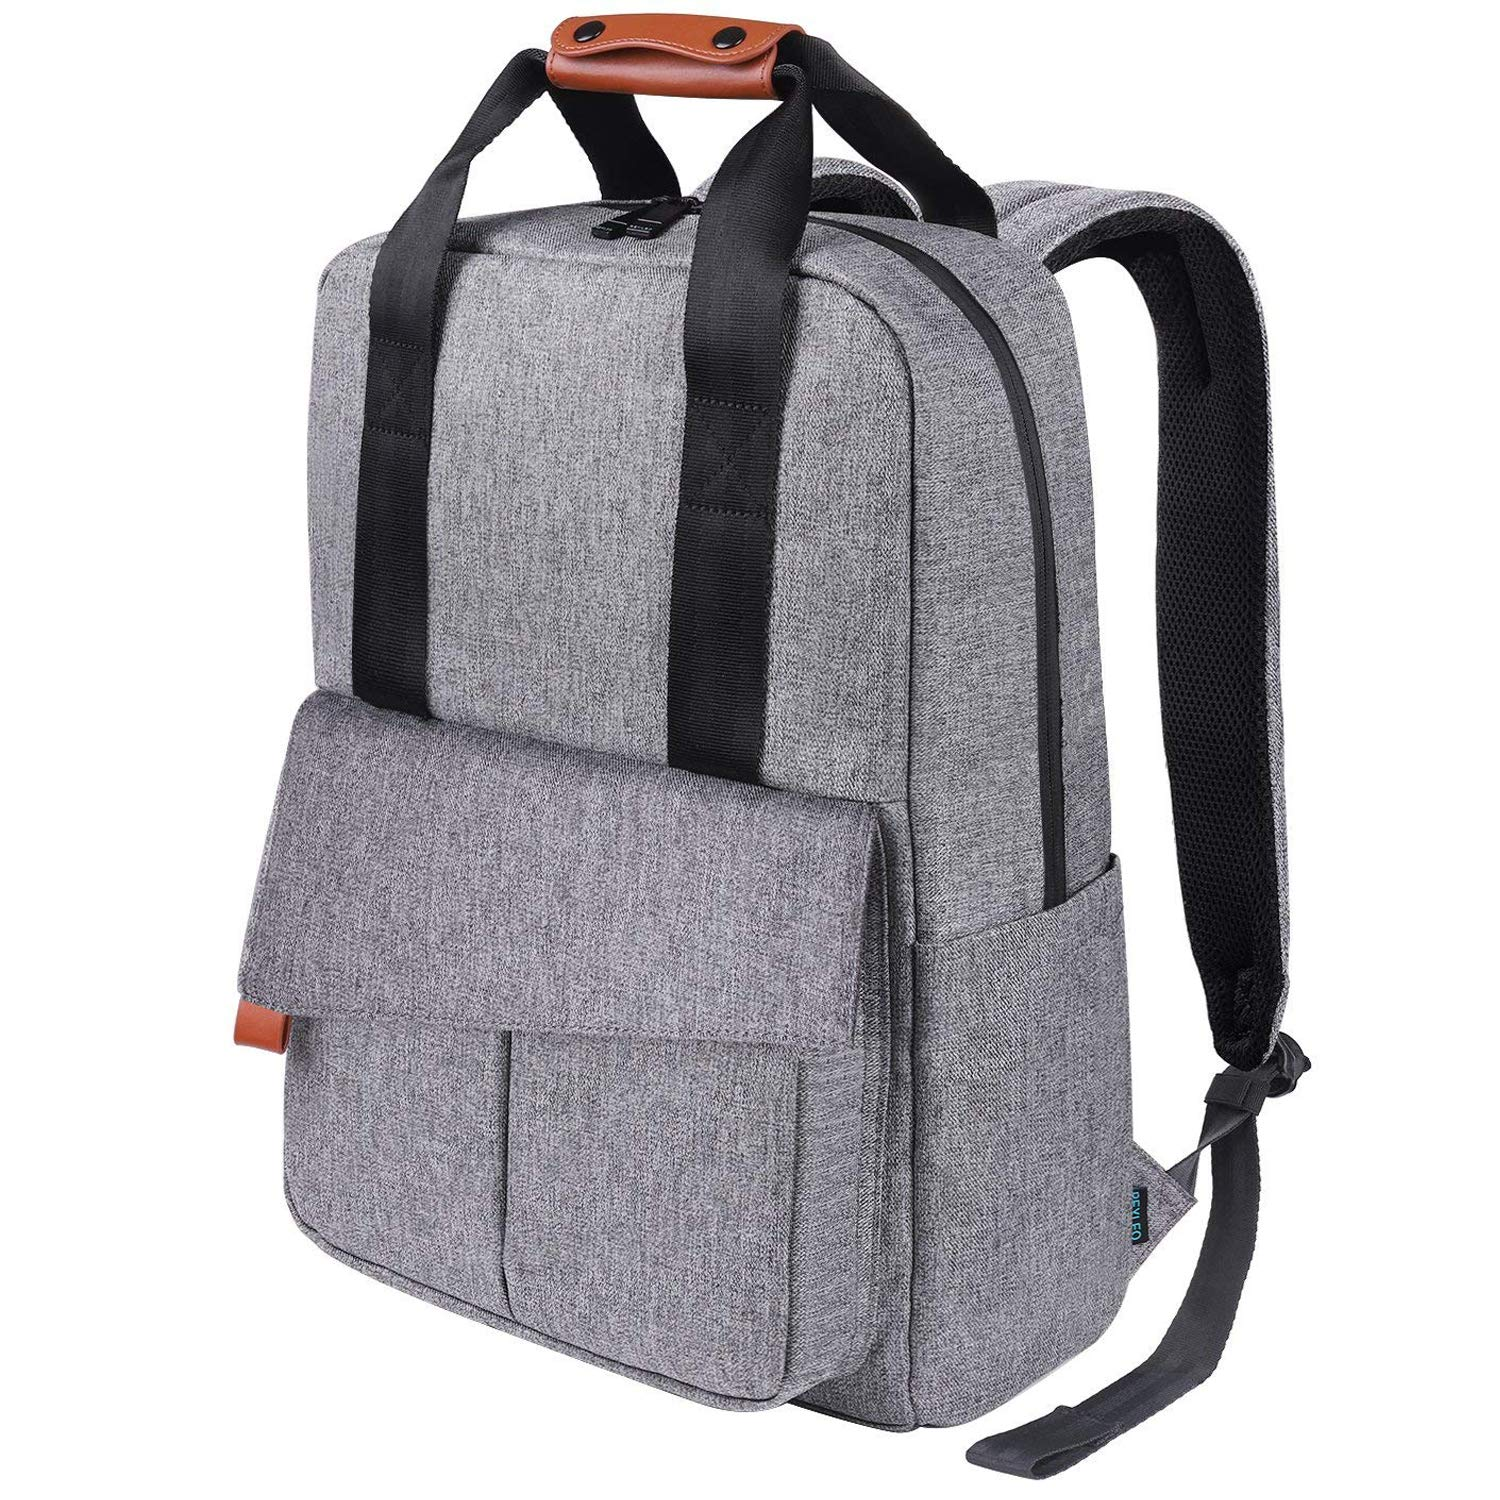 11c8b99b7a1de REYLEO Business Laptop Backpack 15.6 Anti-Theft Notebook Rucksack Casual  Daypack with Leather Handle for Women Men - Grey (RB23)  Amazon.co.uk   Luggage